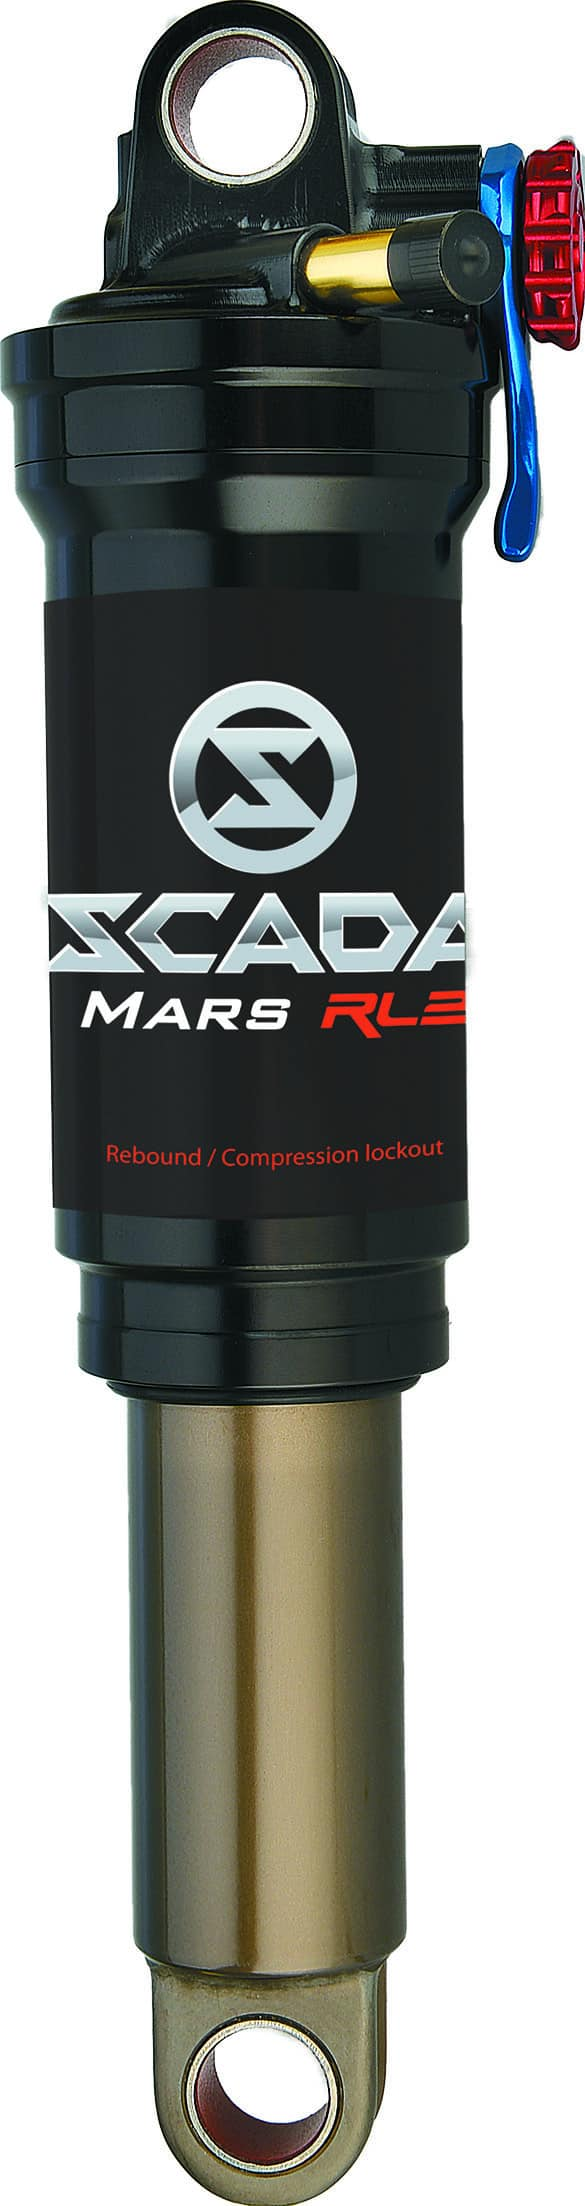 Rear Shocks MARS RL2